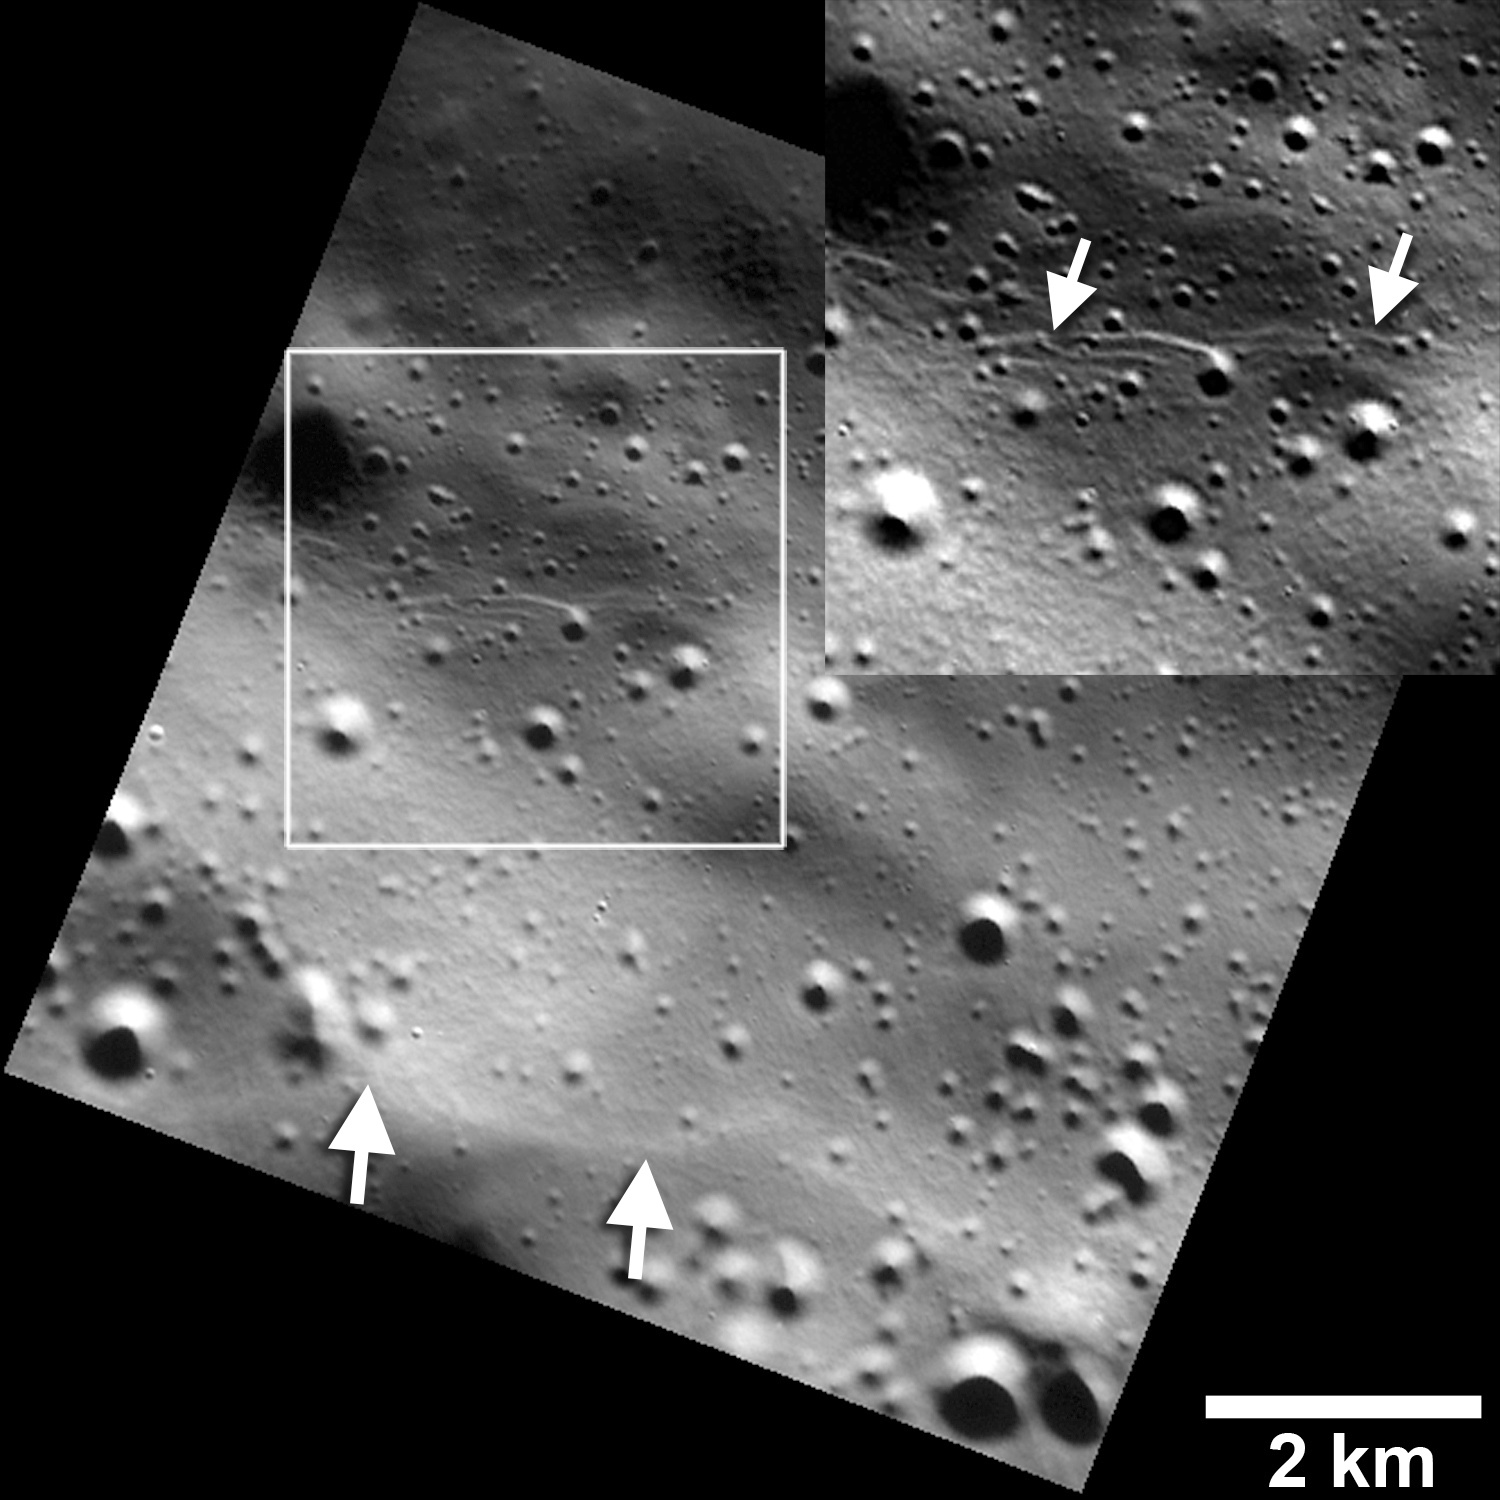 Small graben, or narrow linear troughs, have been found associated with small fault scarps (lower white arrows) on Mercury, and on Earth's Moon. The small troughs, only tens of metres wide (inset box and upper white arrows), likely resulted from the bending of the crust as it was uplifted, and must be very young to survive continuous meteoroid bombardment. Image credits: NASA/JHUAPL/Carnegie Institution of Washington/Smithsonian Institution.